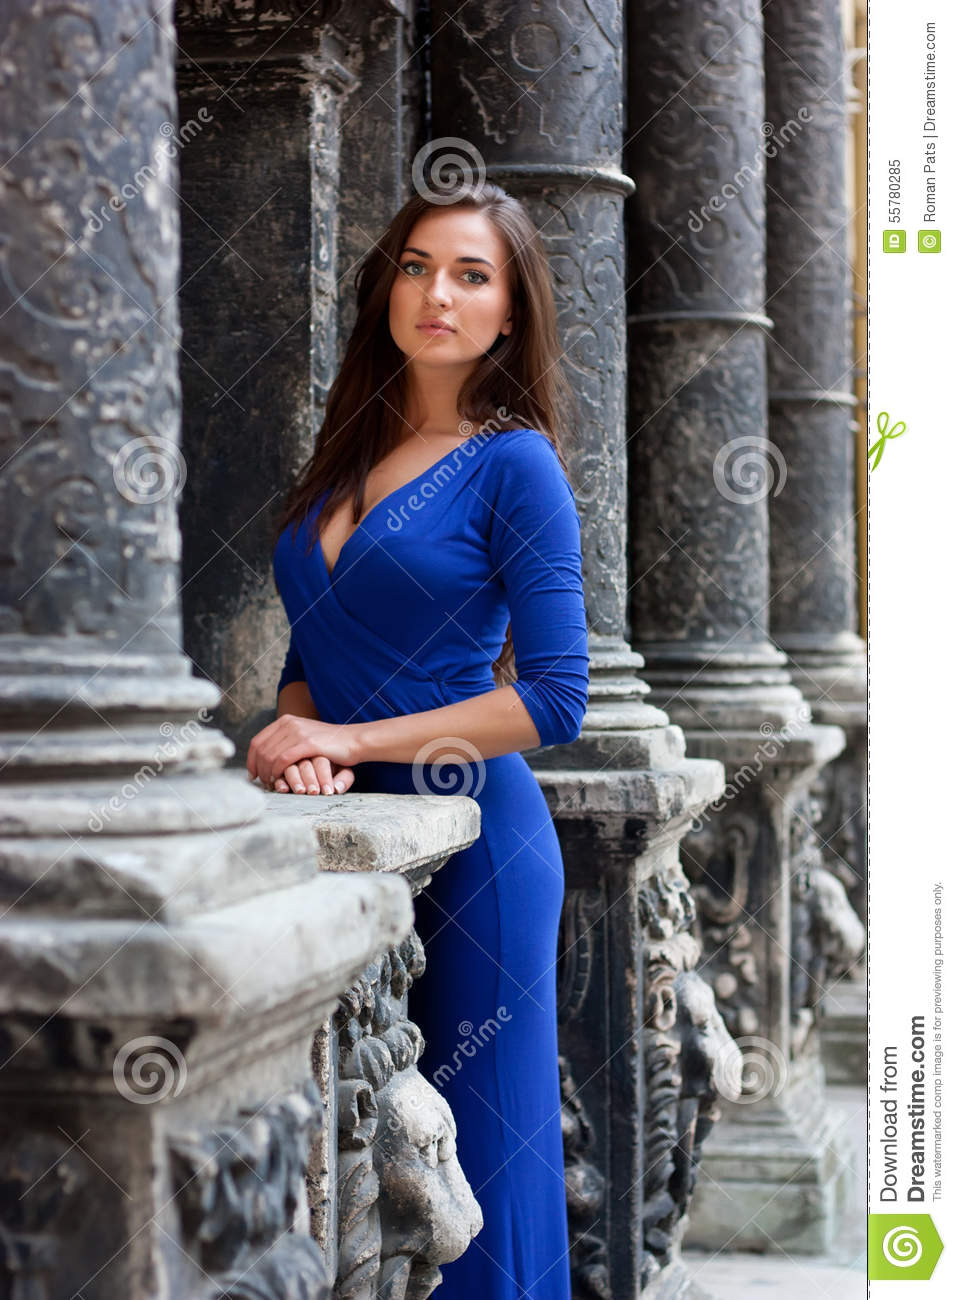 Stylish Girl In A Blue Dress Standing Next To Good Old Wall Stock ...